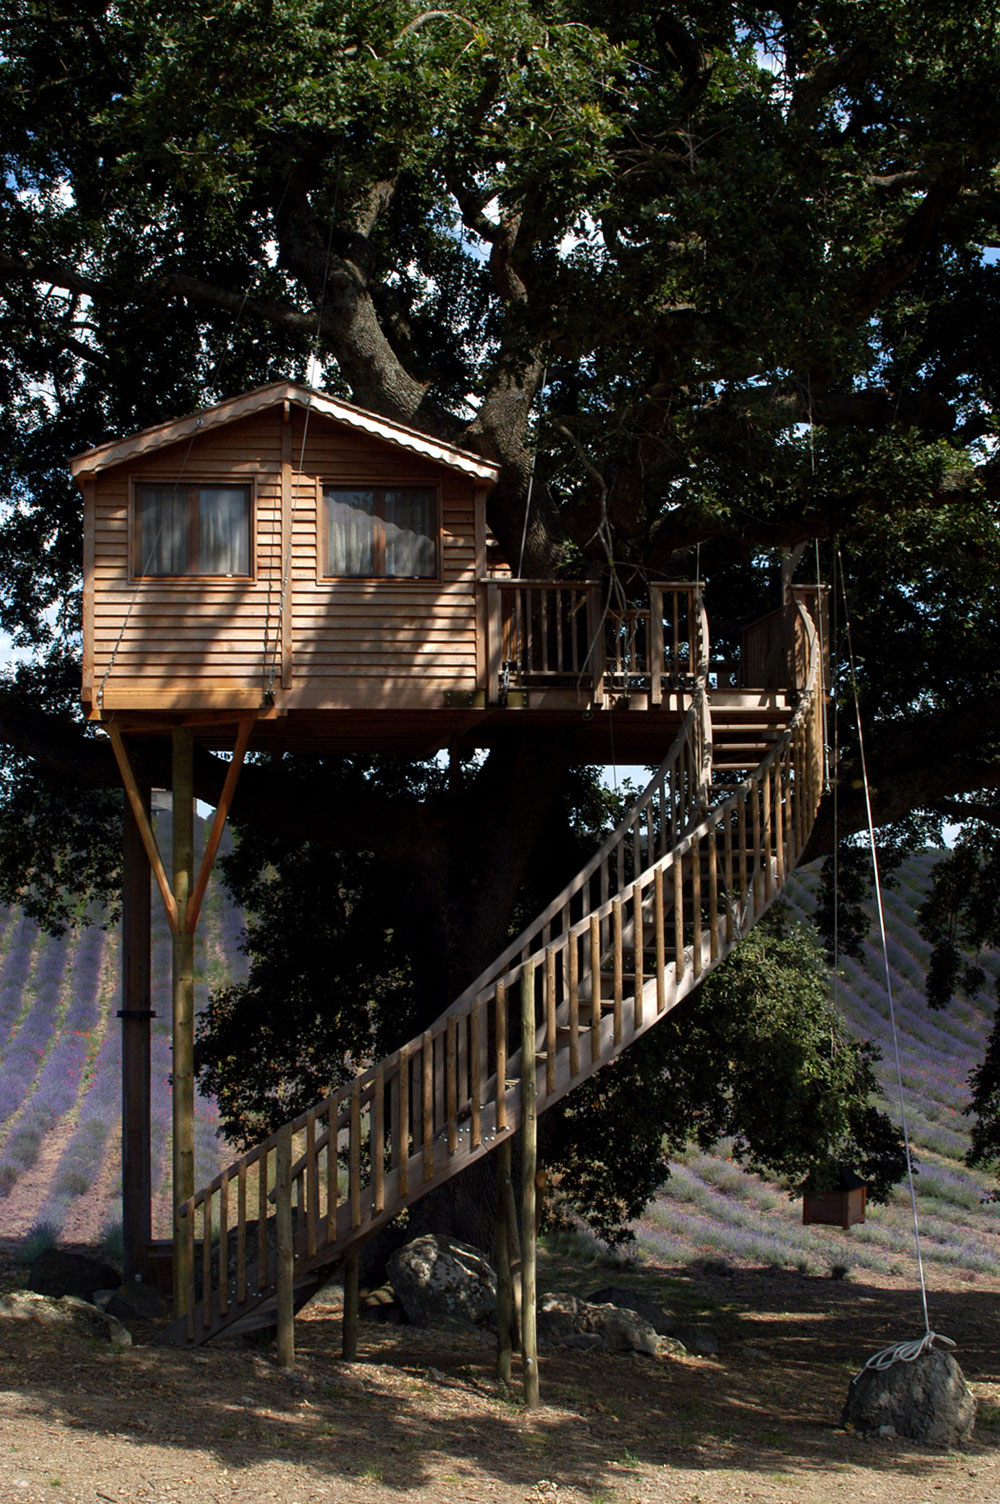 Treehouse picture in nature